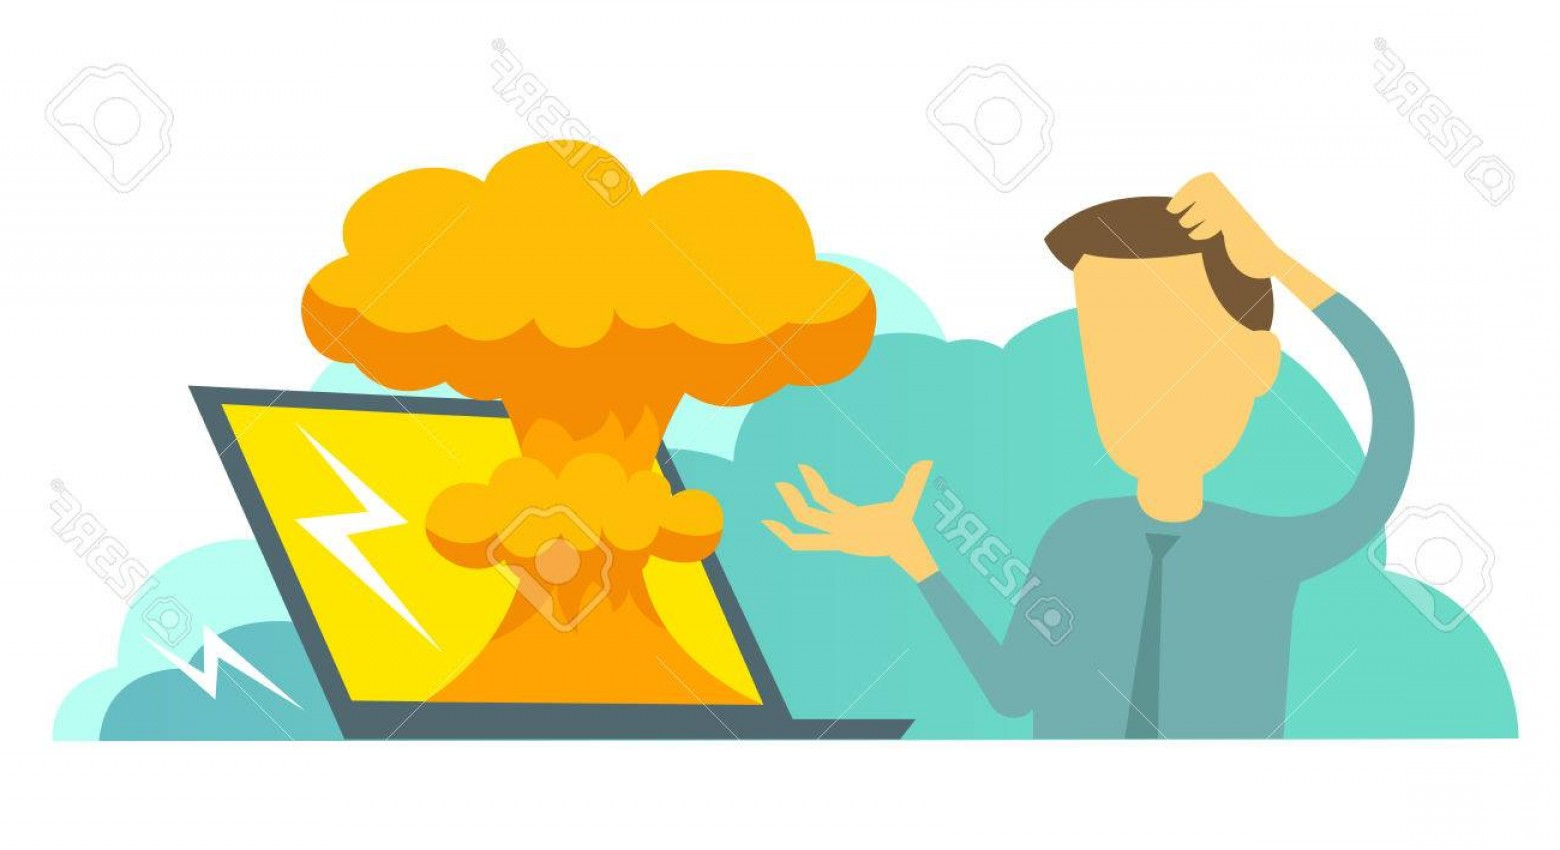 Atomic Bomb Explosion Vector: Photostock Vector System Error In Laptop Epic Fail Atomic Bomb Explosion Nuclear Man Manager Programmer And Bug In The